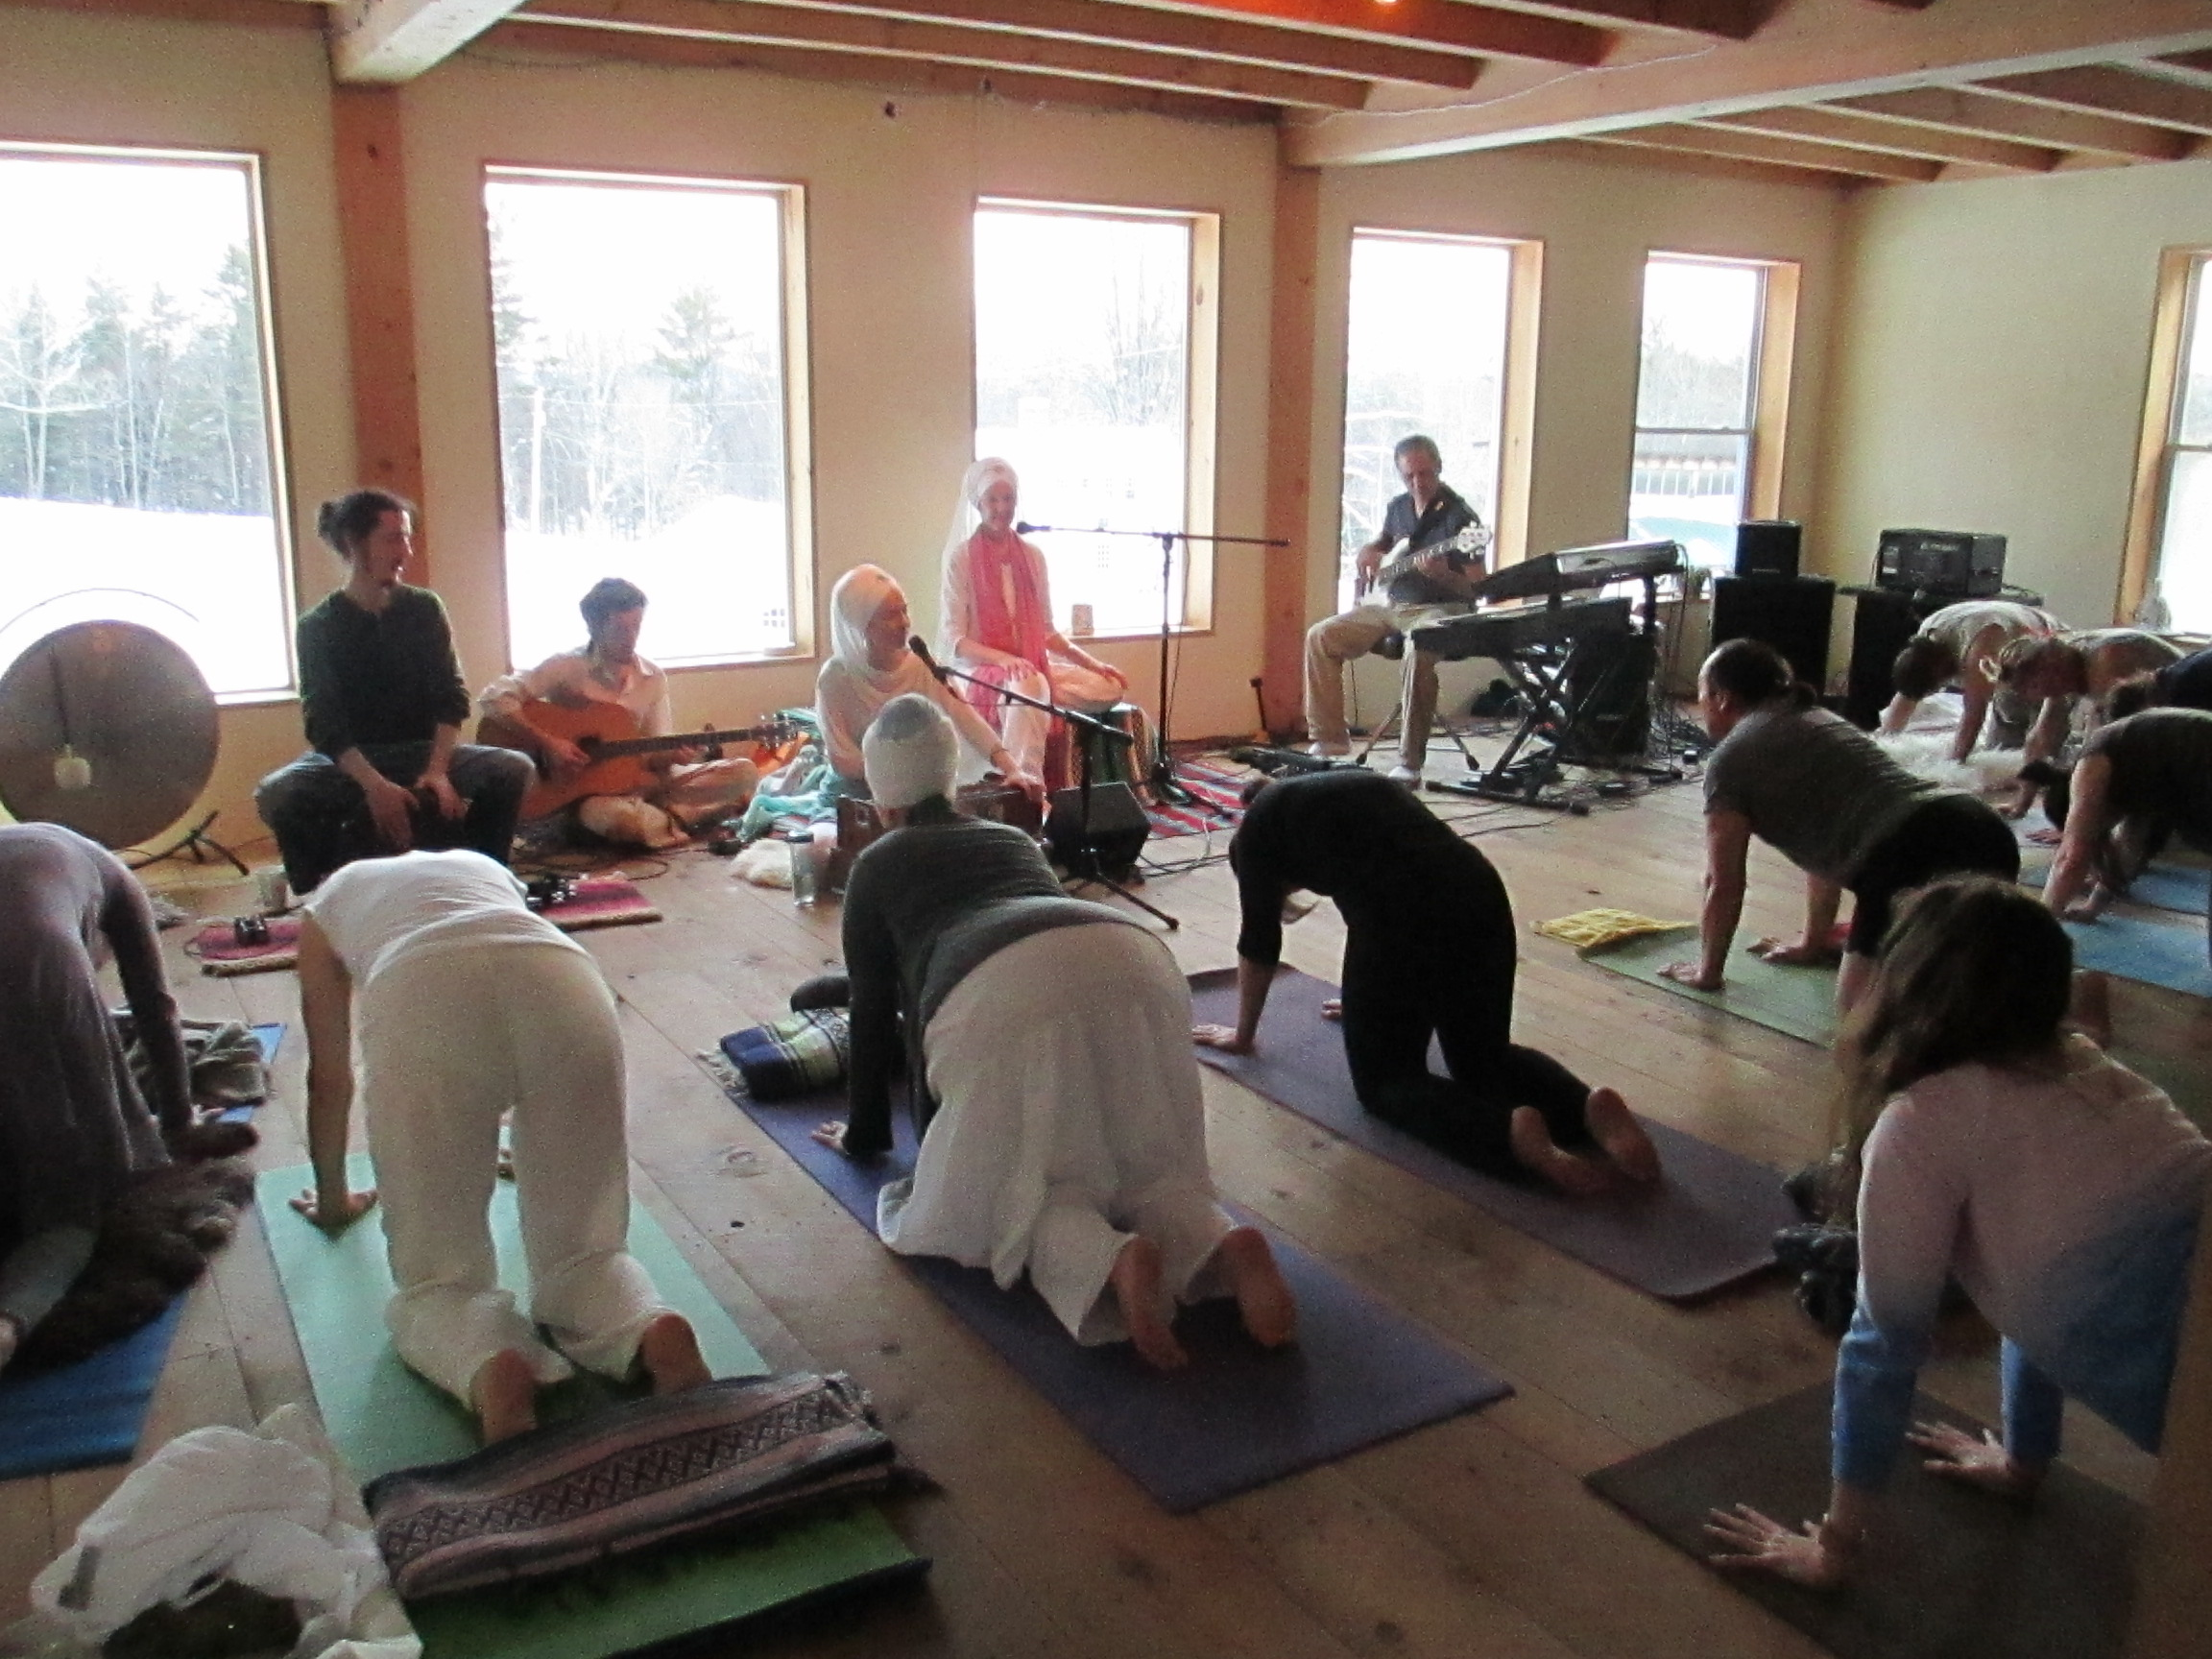 Yoga Class With Music